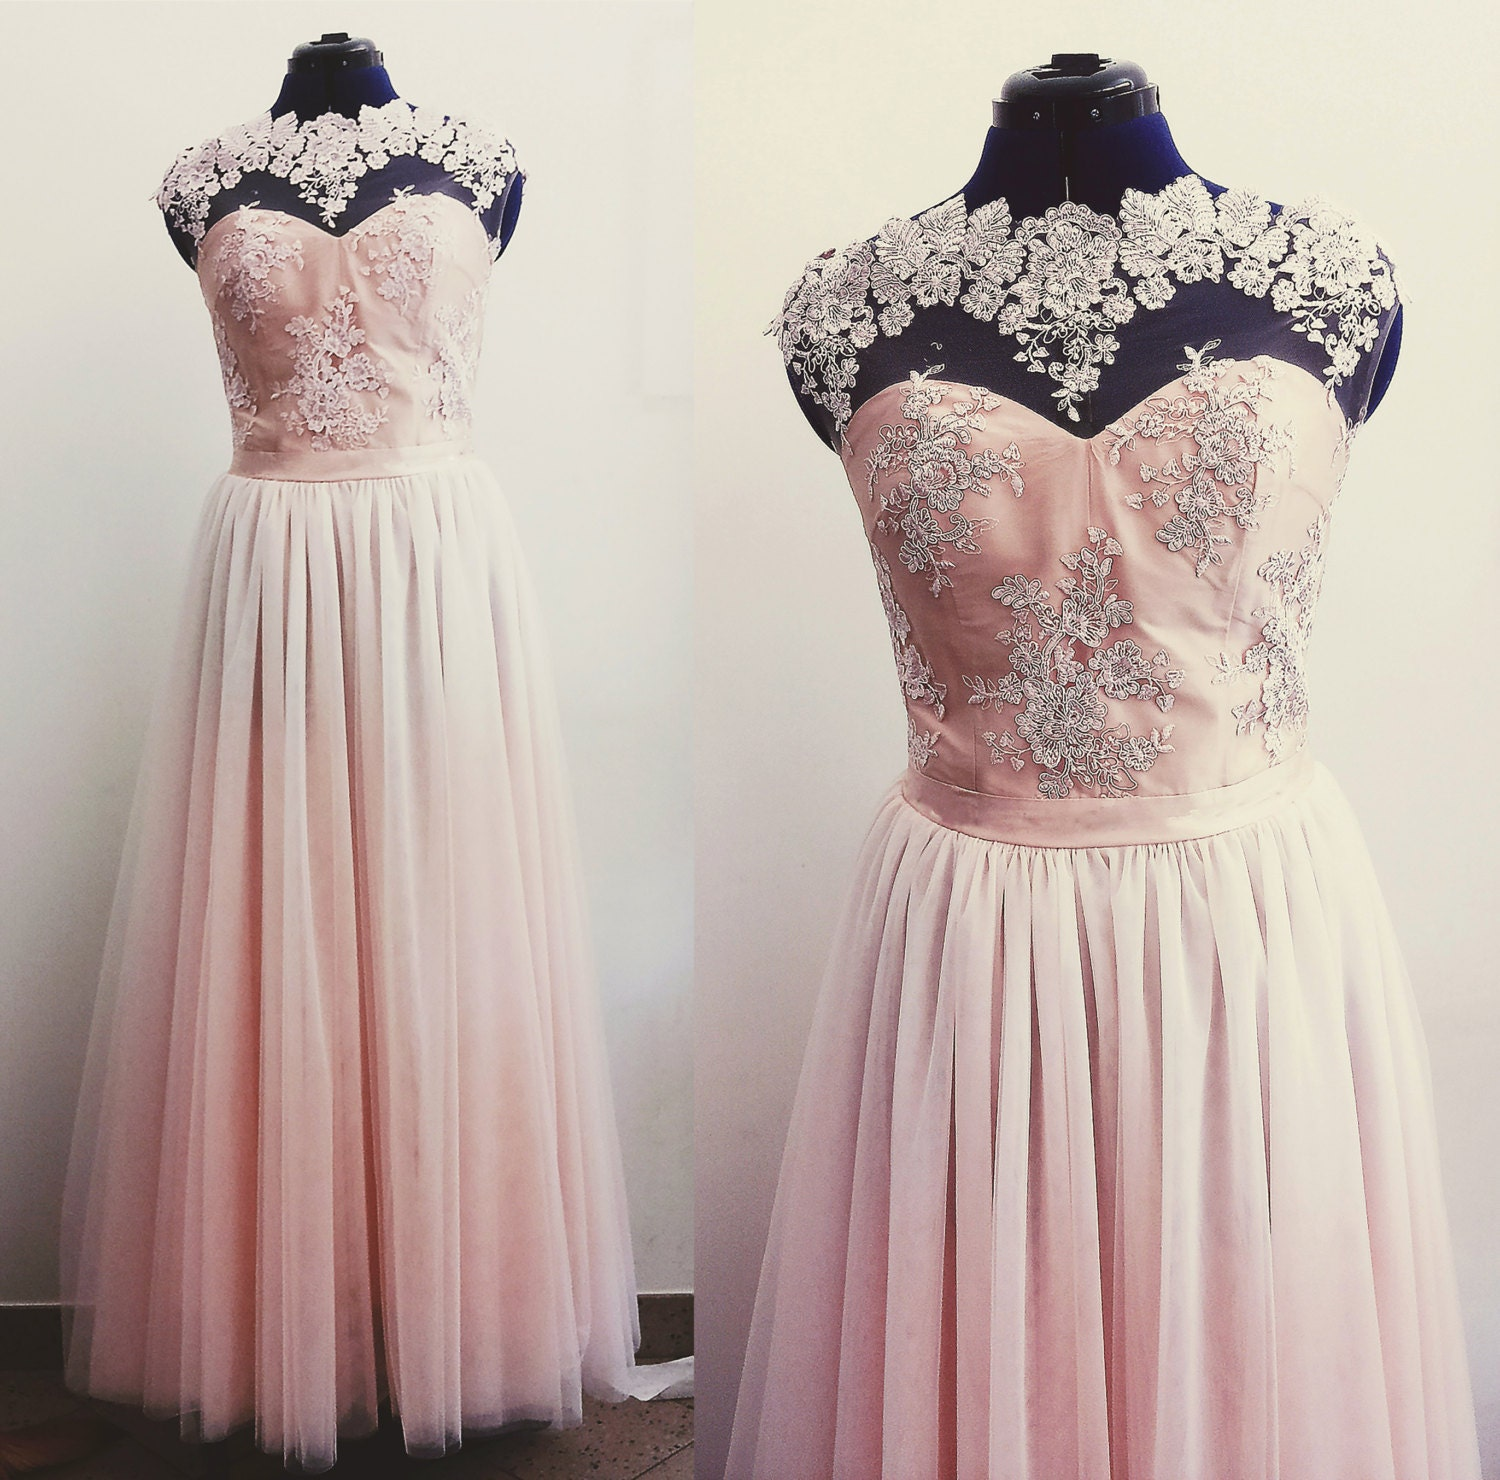 SALE tulle WEDDING DRESS pink white black lace bodice